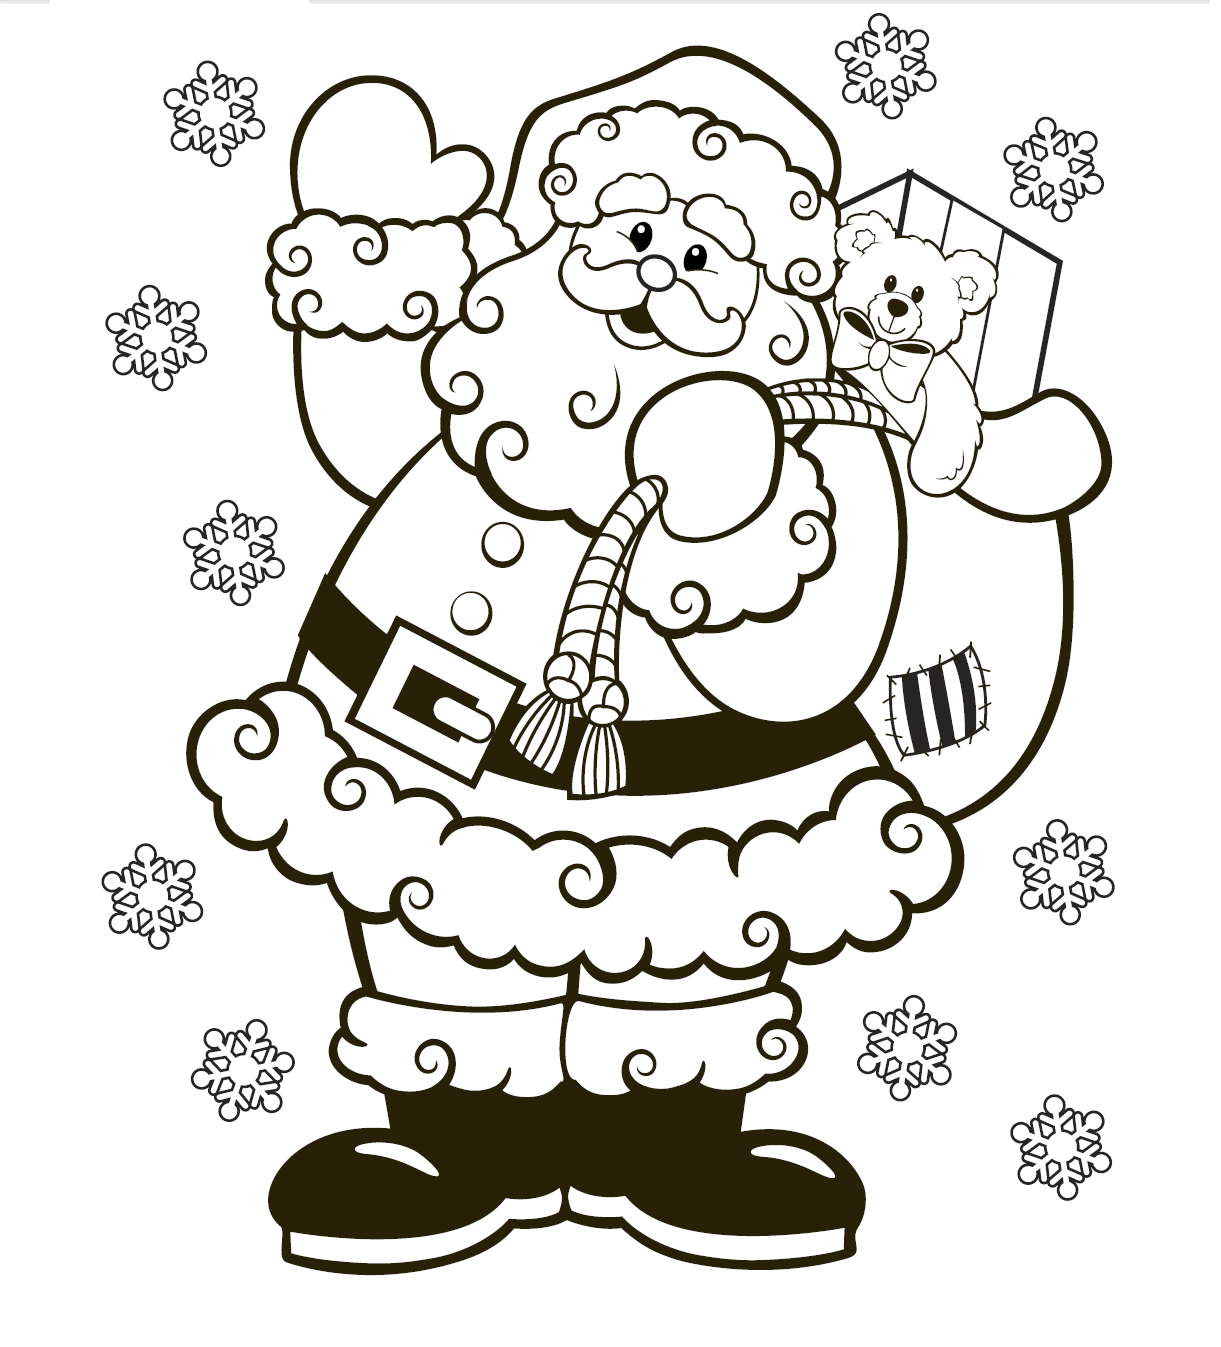 Christmas Toys Coloring Pages - Toy Store Shelves Christmas ... | 1347x1221